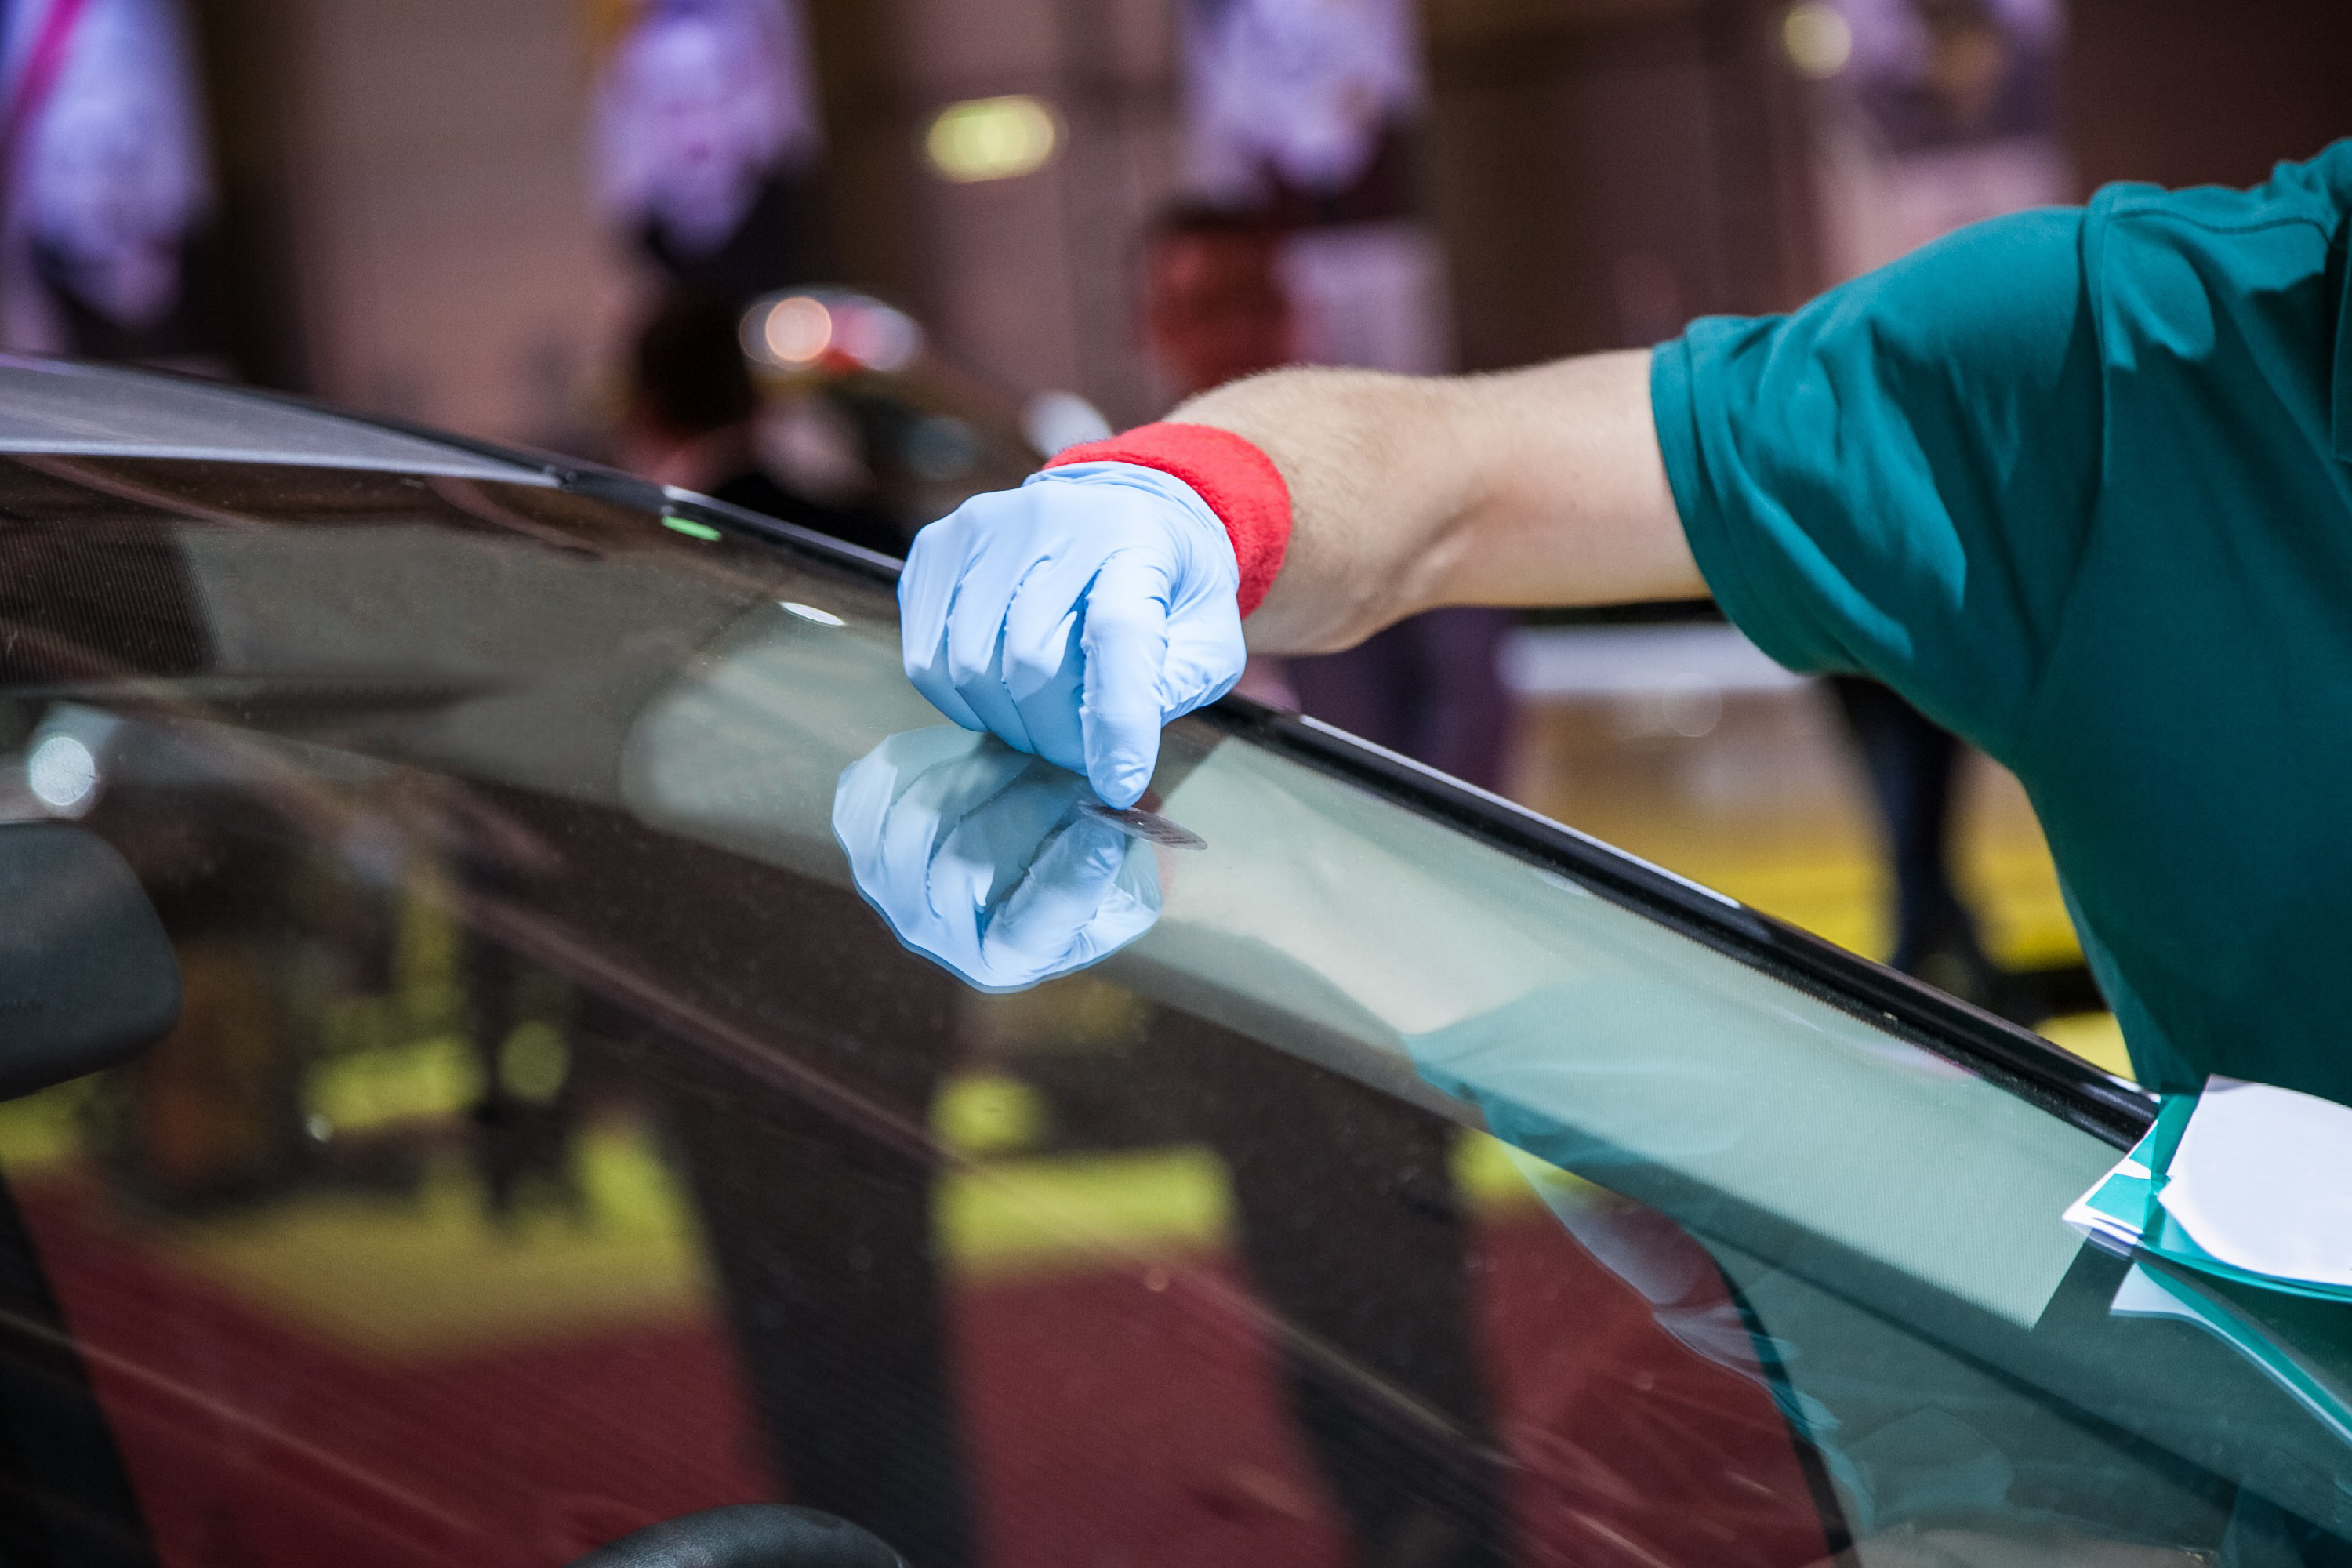 c8b17f872c3 San Antonio Auto Glass Repair. San Antonio Windshield Repair